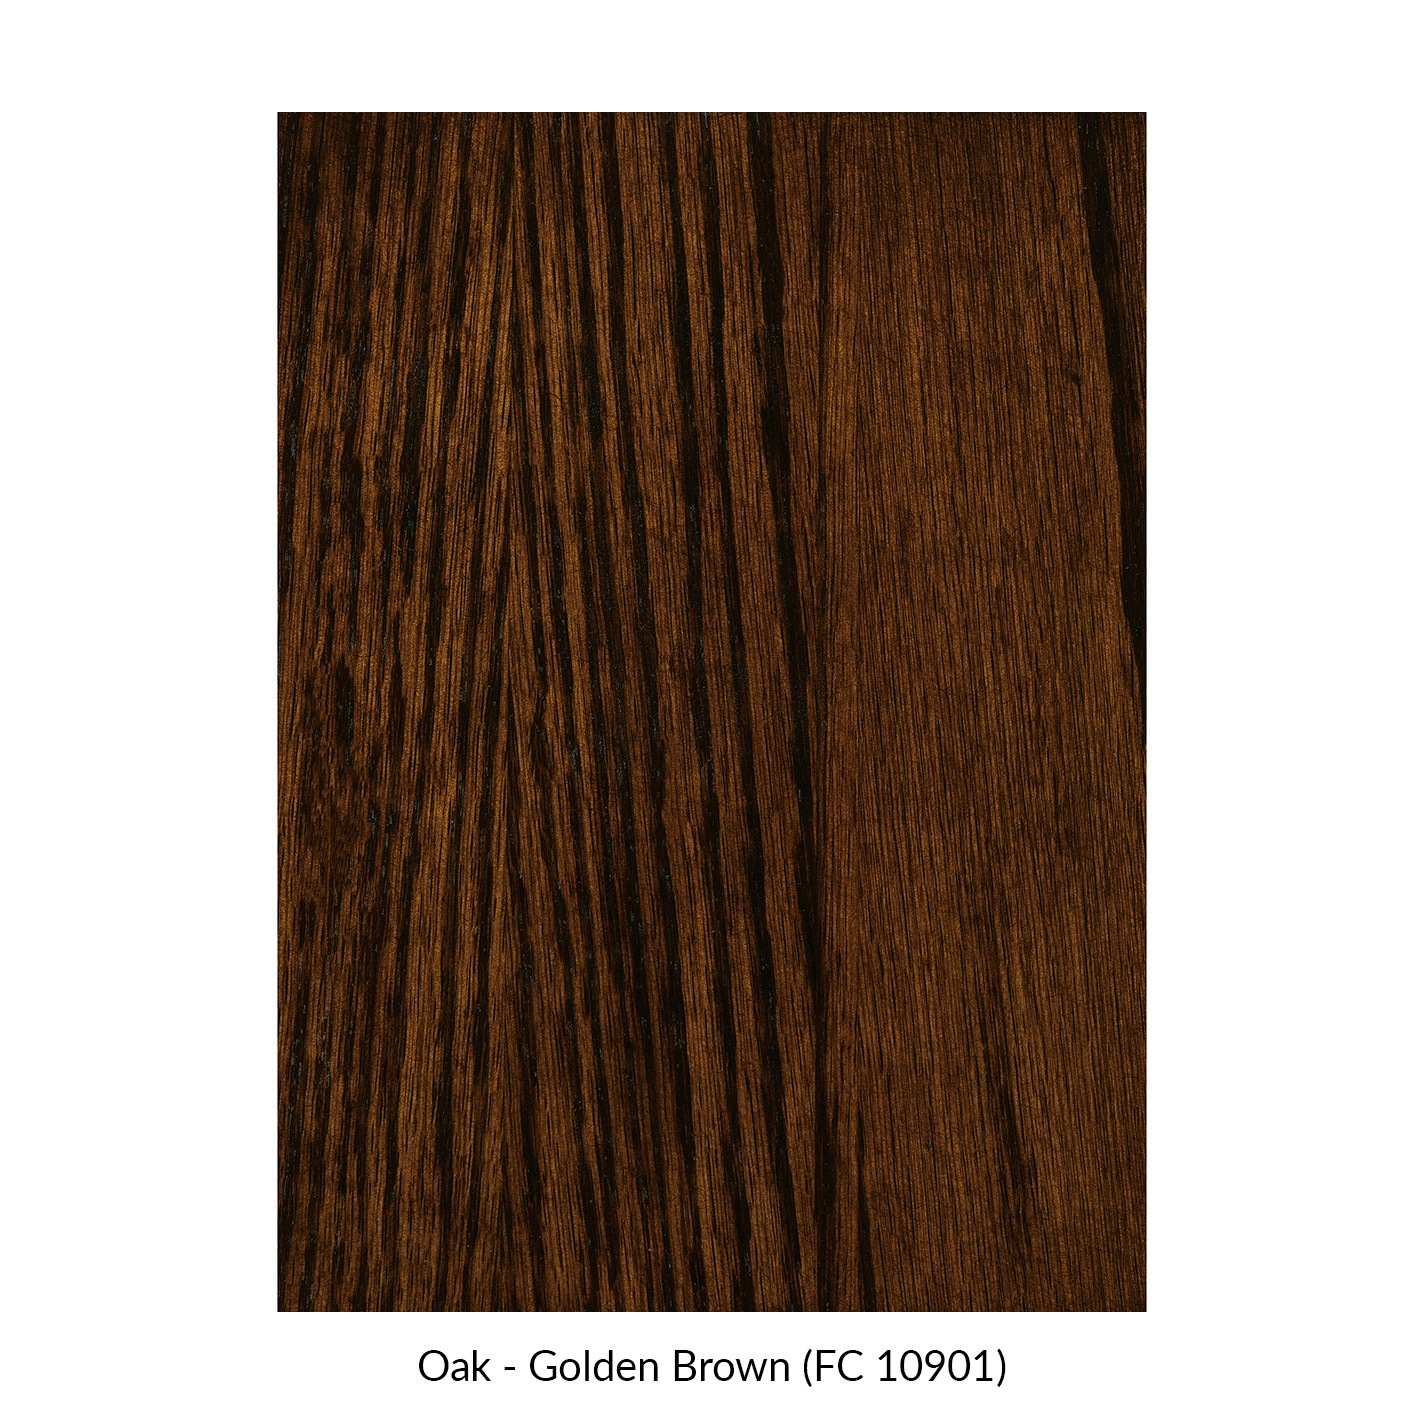 spectrum-oak-golden-brown-fc-10901.jpg